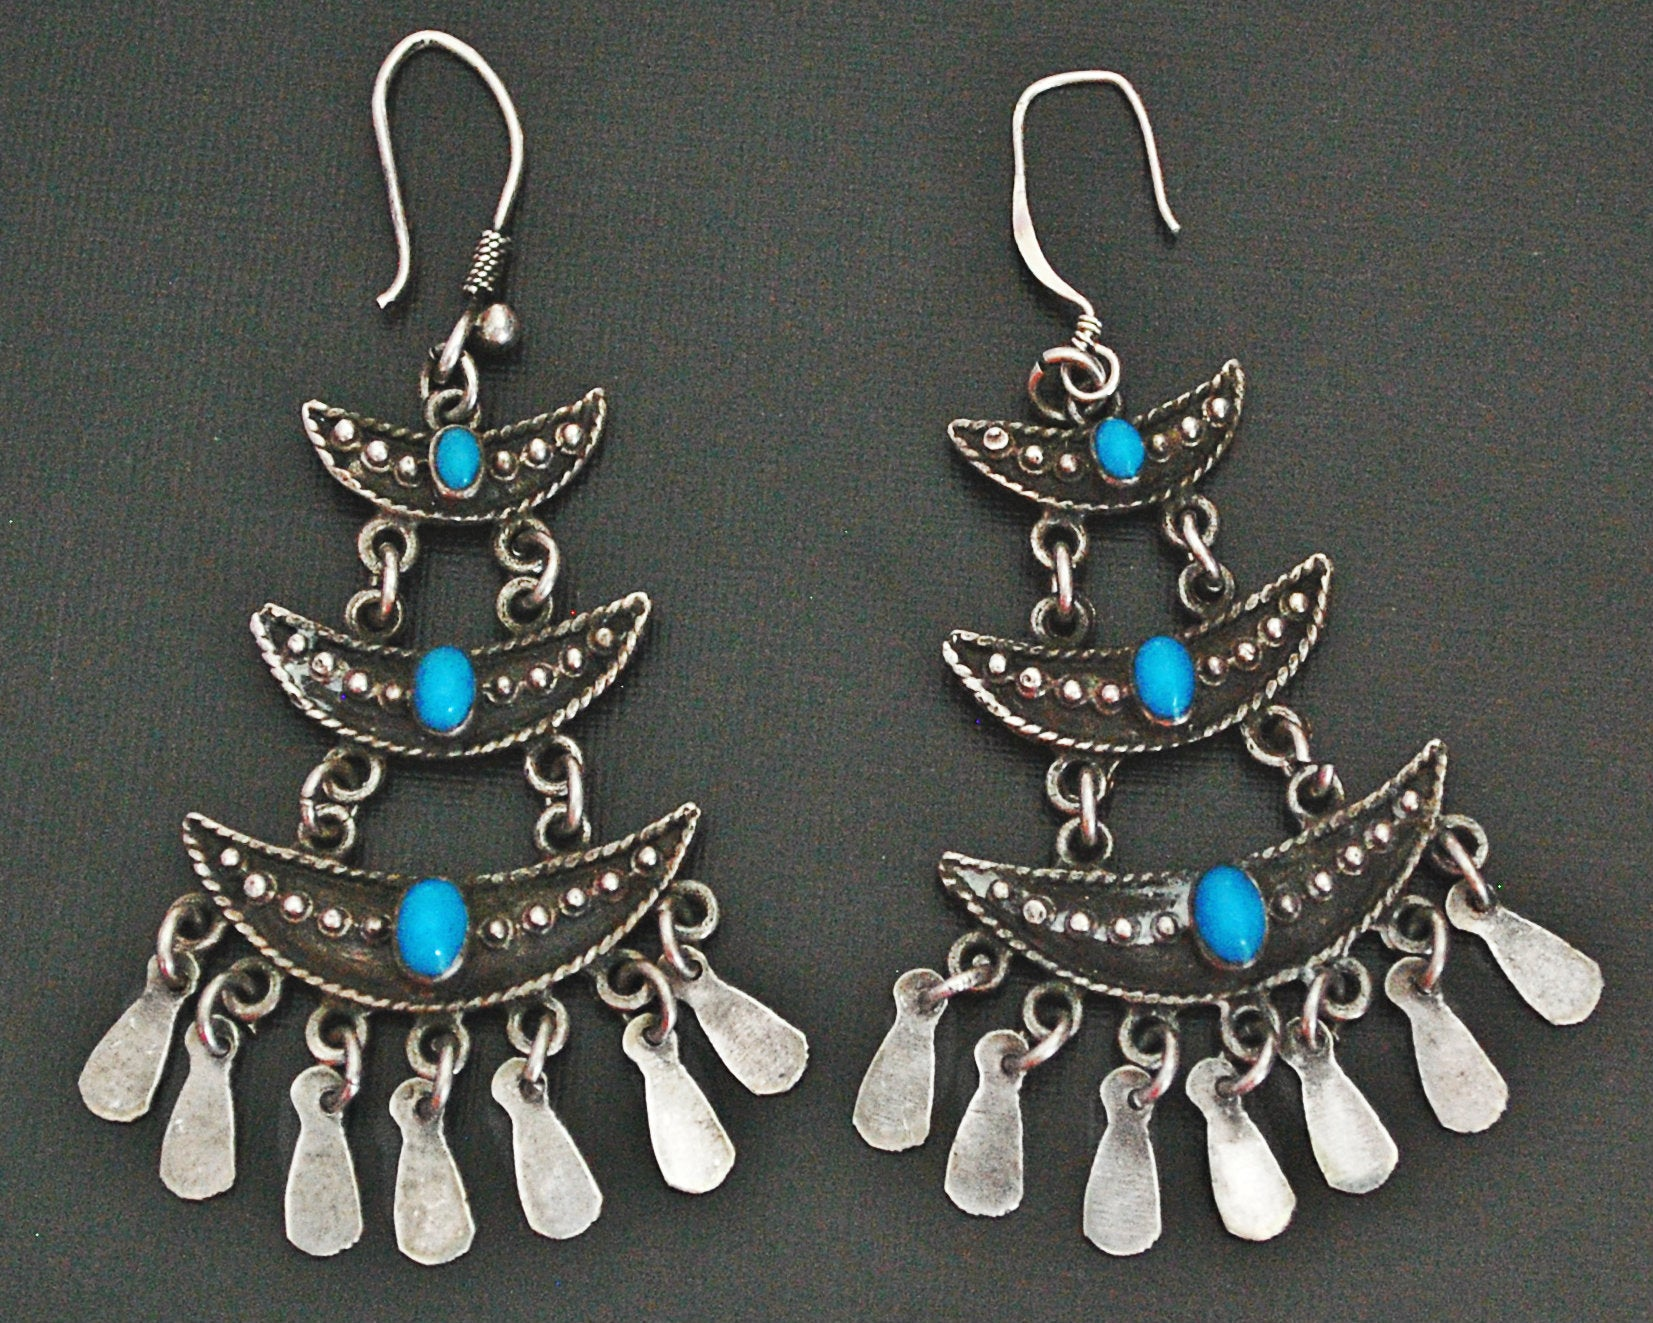 Ethnic Turquoise Earrings with Dangles